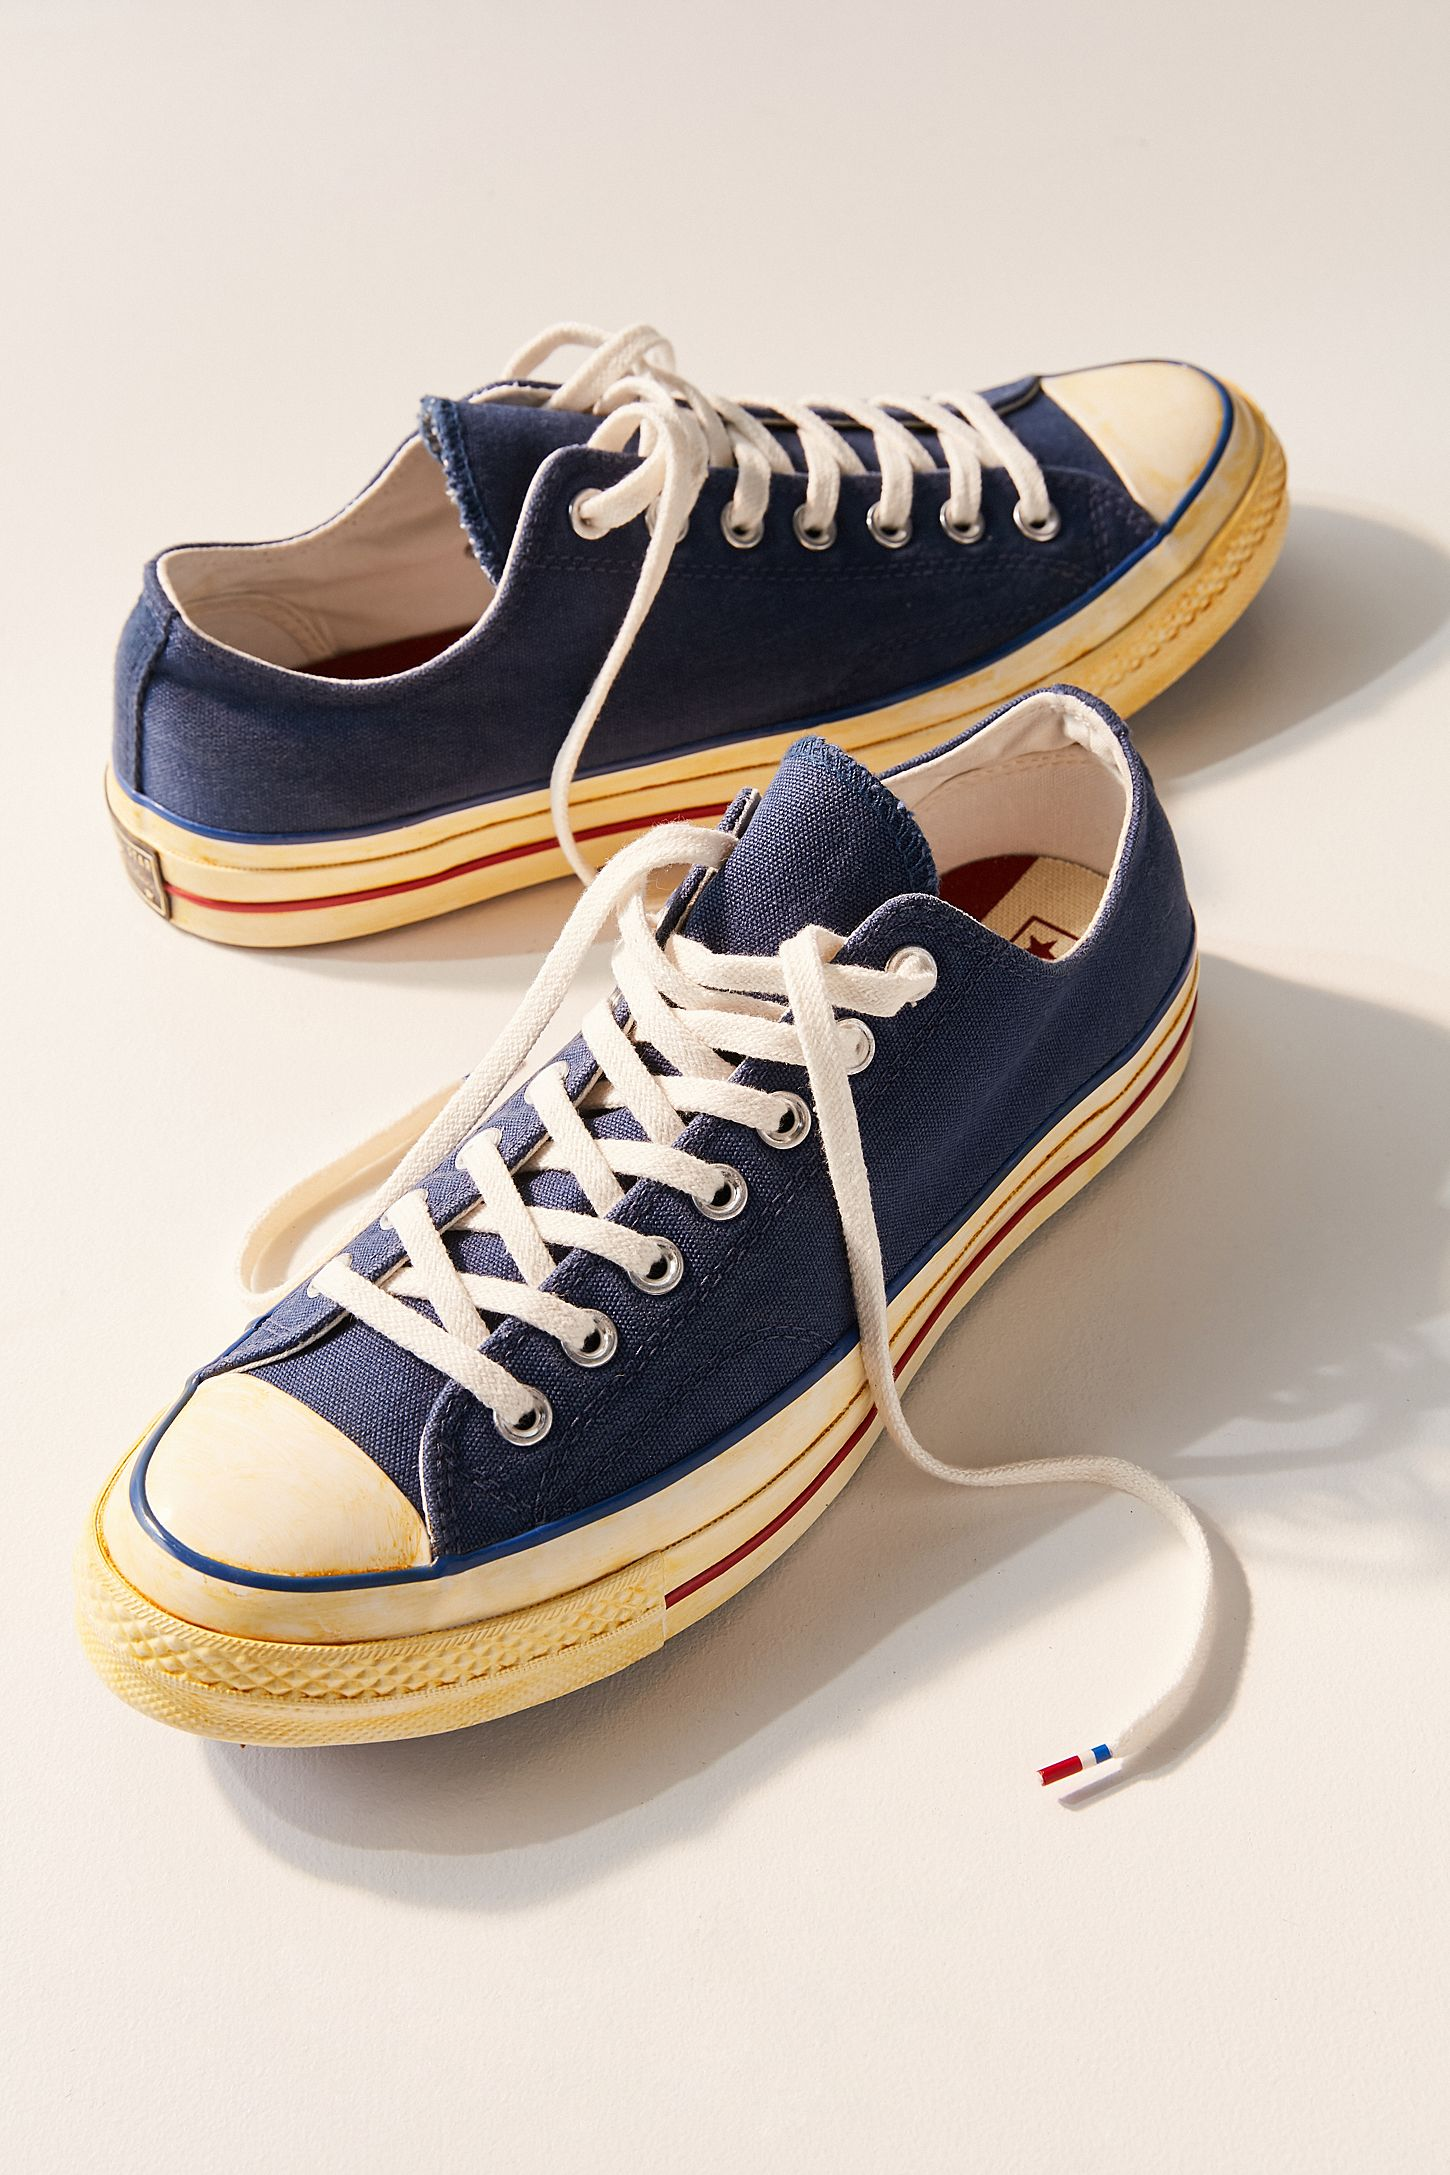 6b611ab6fc8 Converse Chuck Taylor All Star  70 Low Top Canvas Sneaker